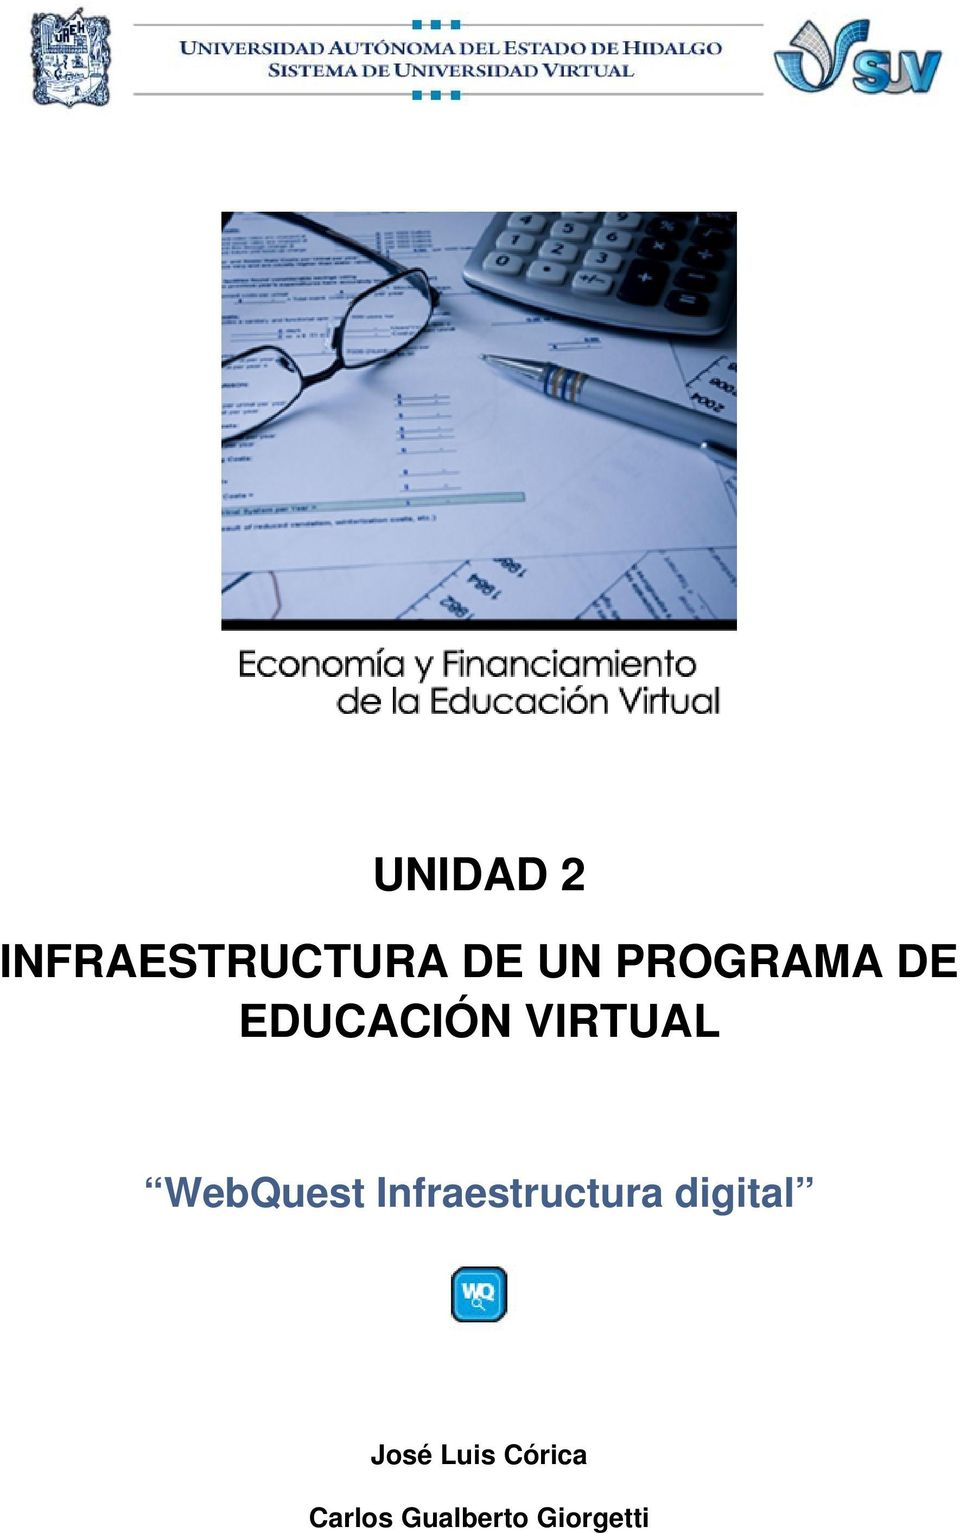 WebQuest Infraestructura digital